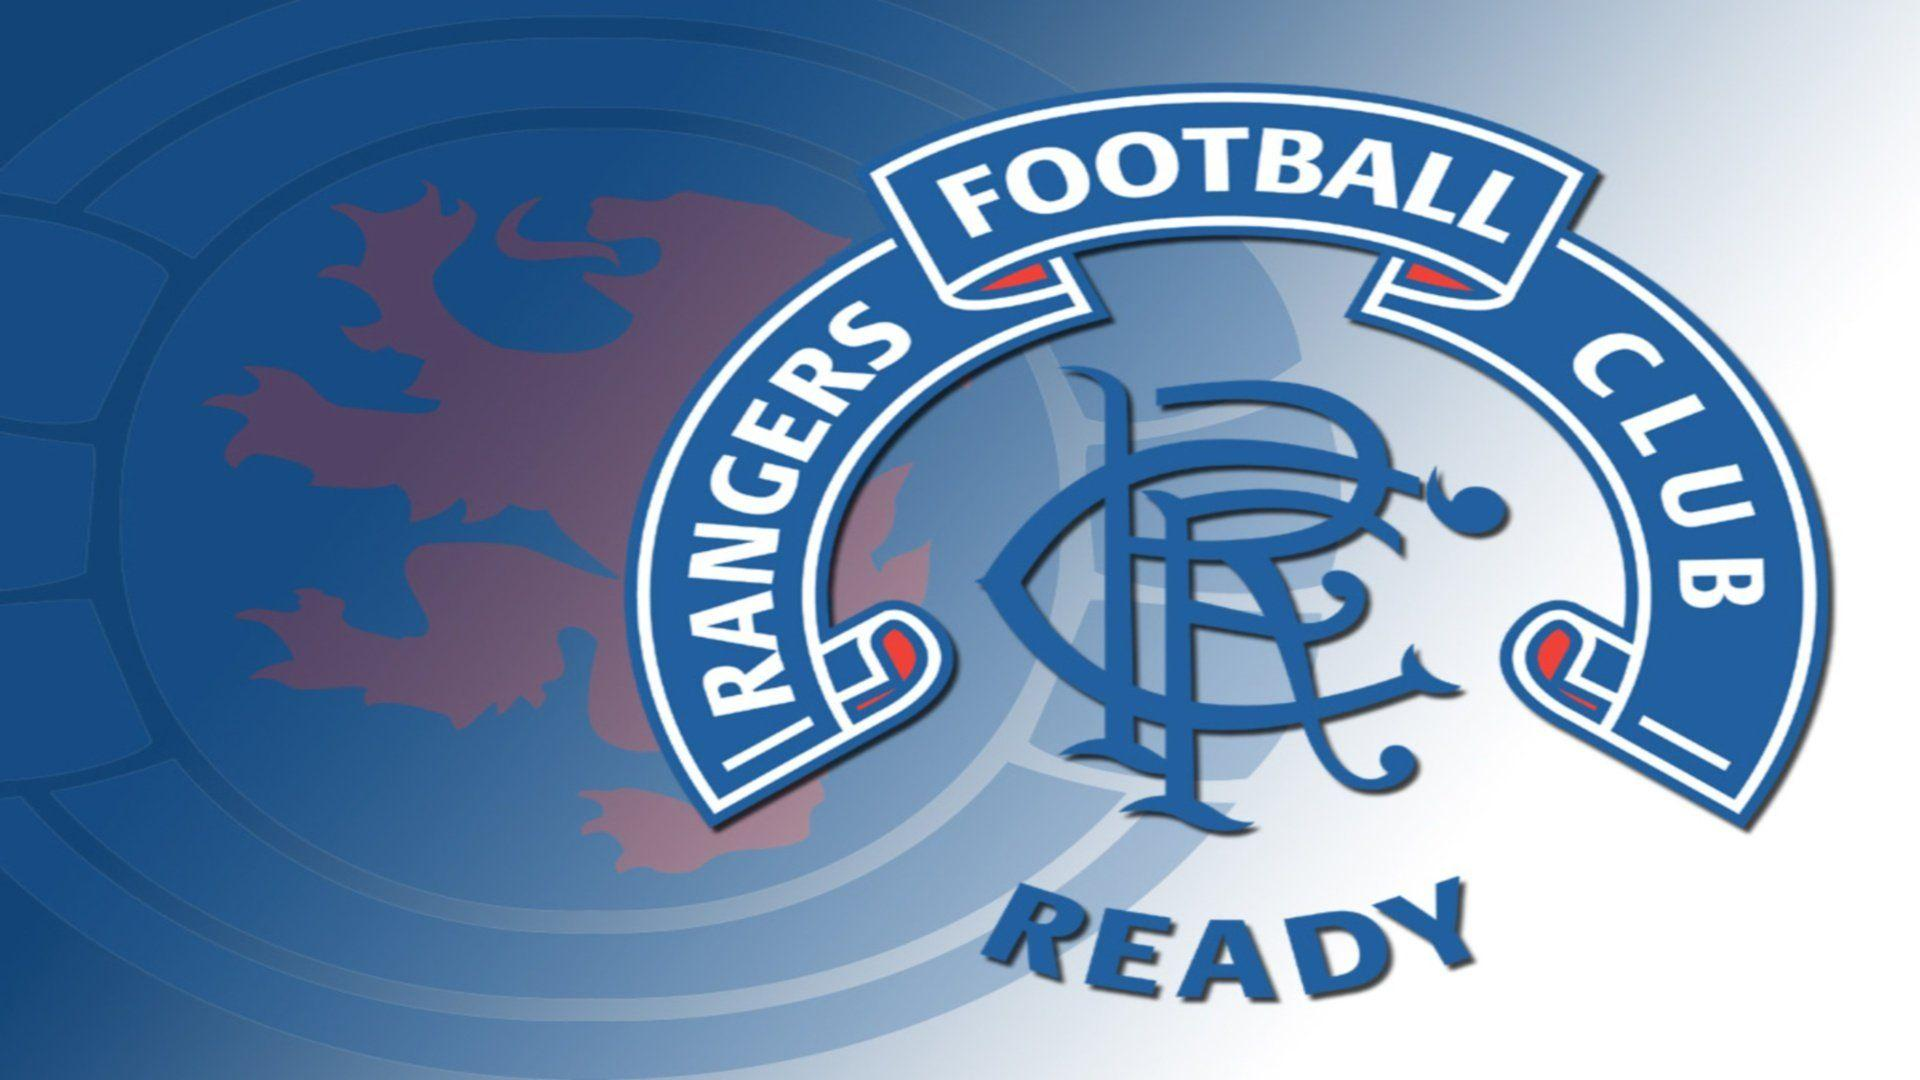 Rangers Fc Wallpapers